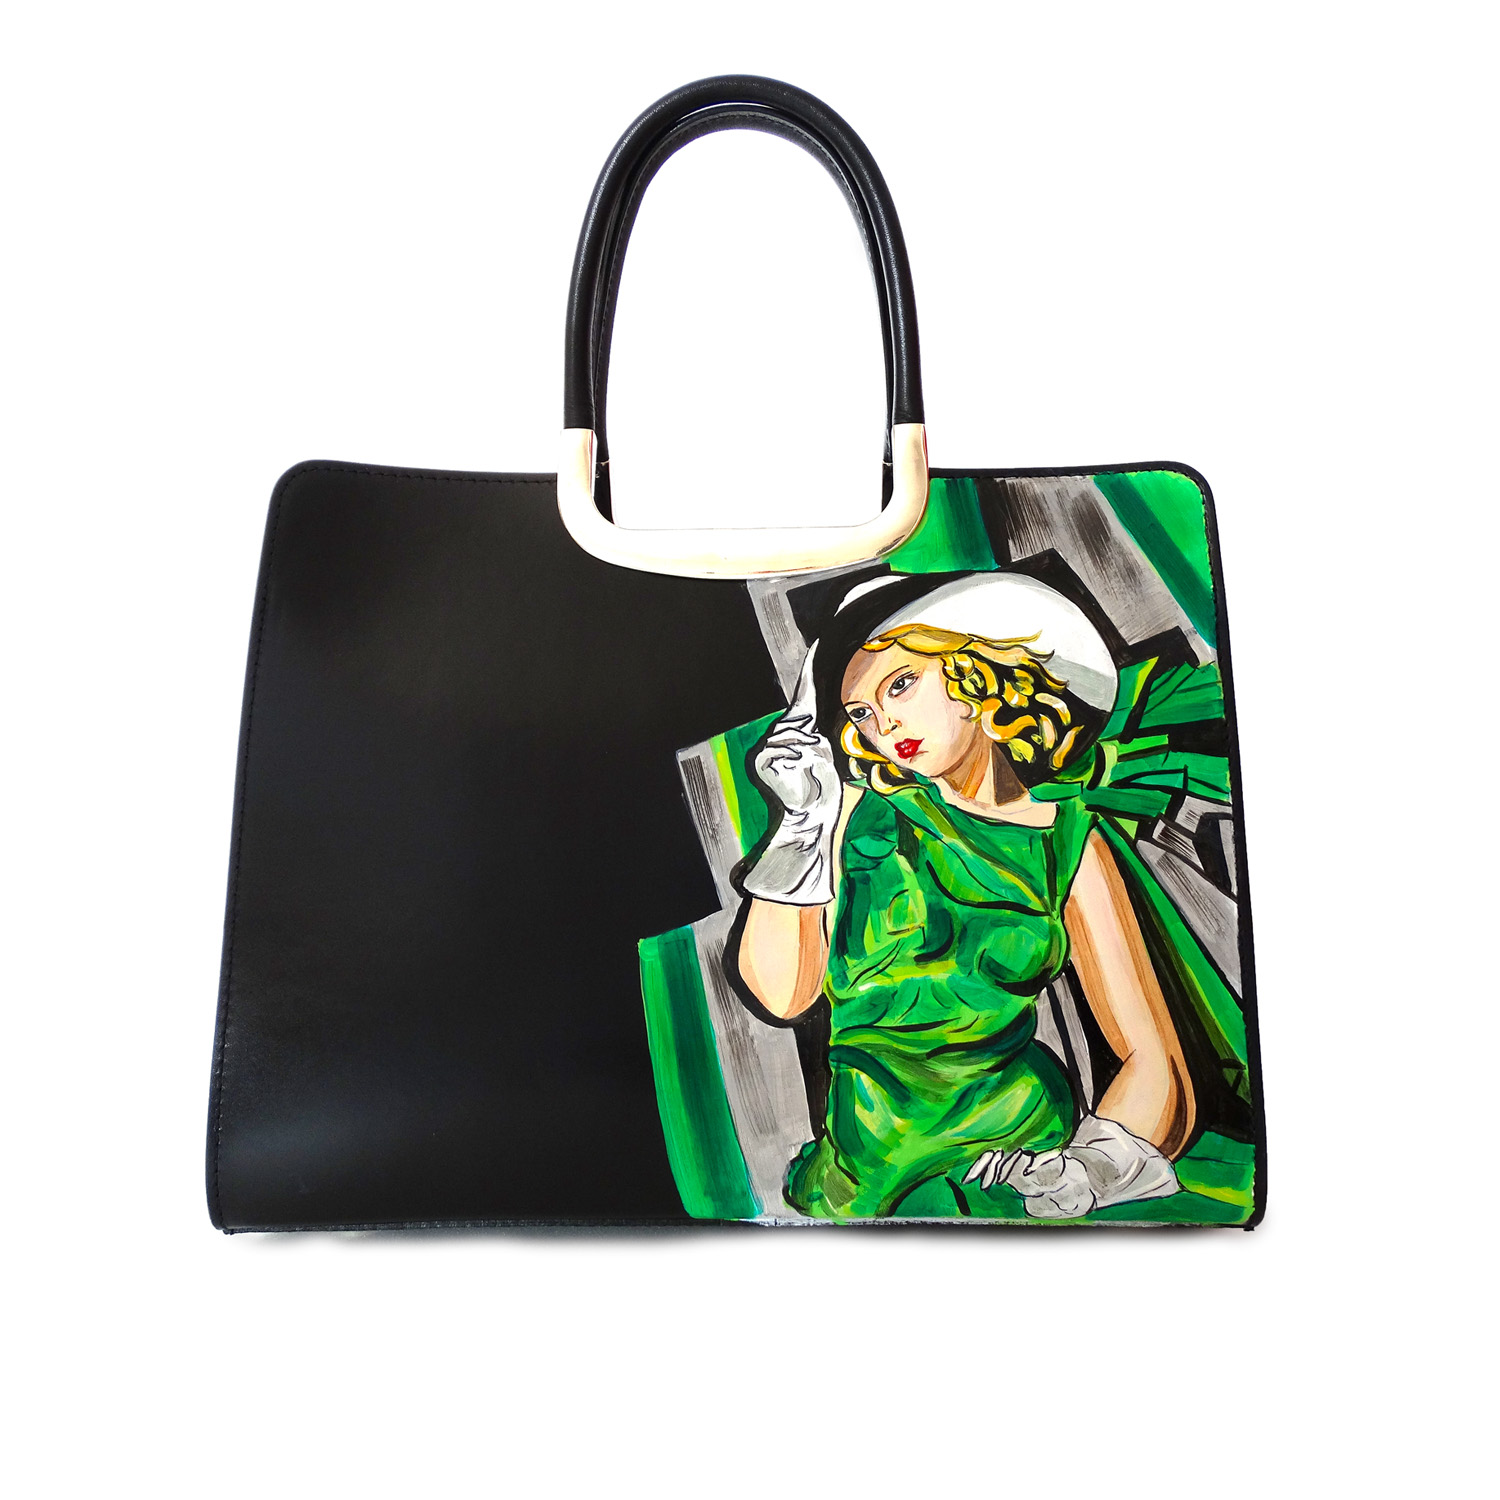 Handpainted bag - Girl in a green dress by De Lempicka